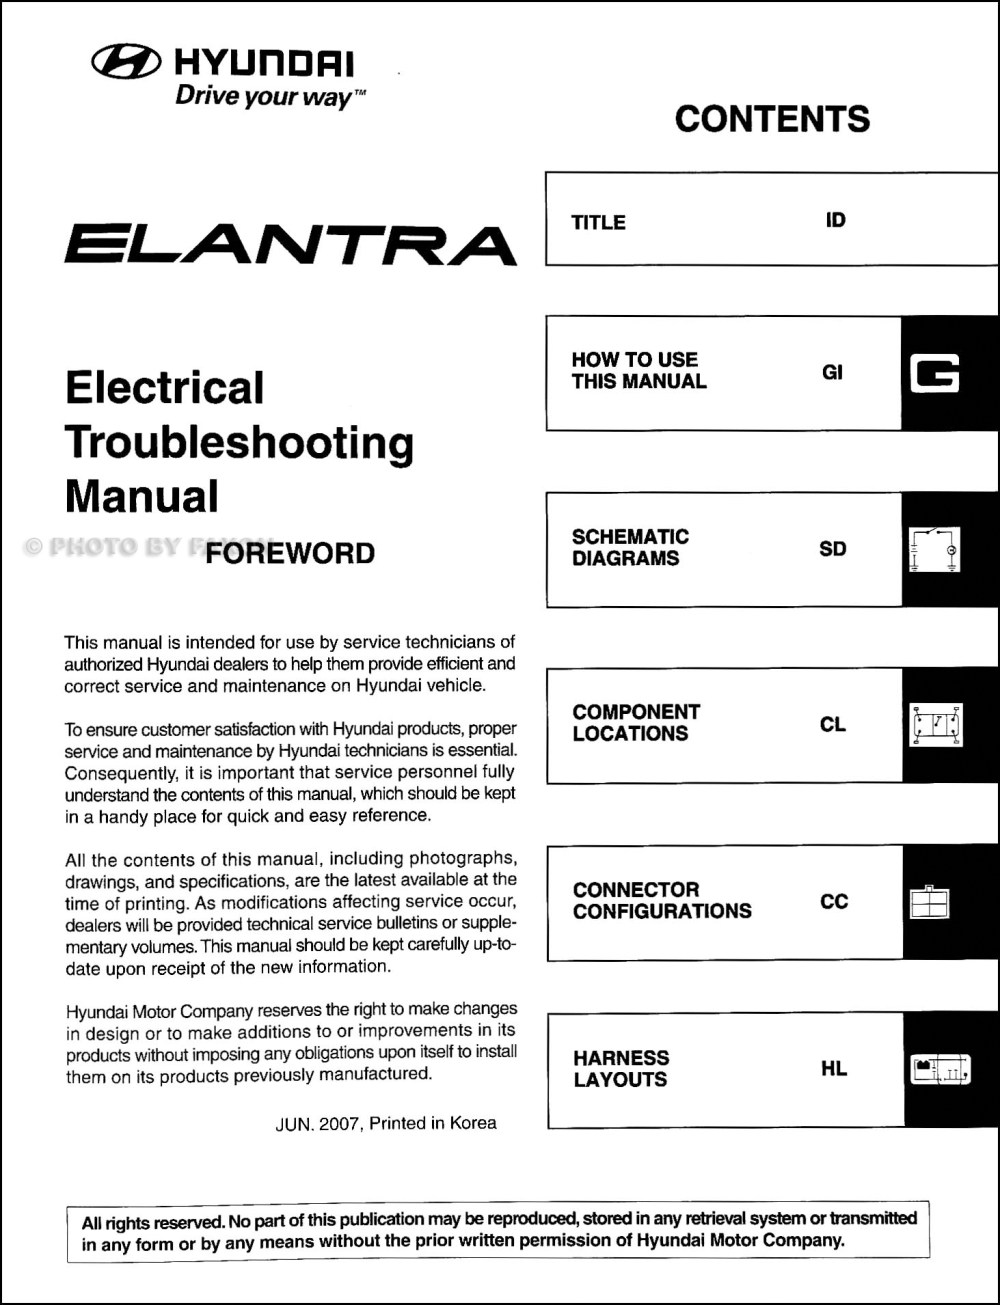 medium resolution of hyundai veracruz wiring diagram simple wiring schema 2005 hyundai elantra wiring diagram hyundai veracruz wiring diagram